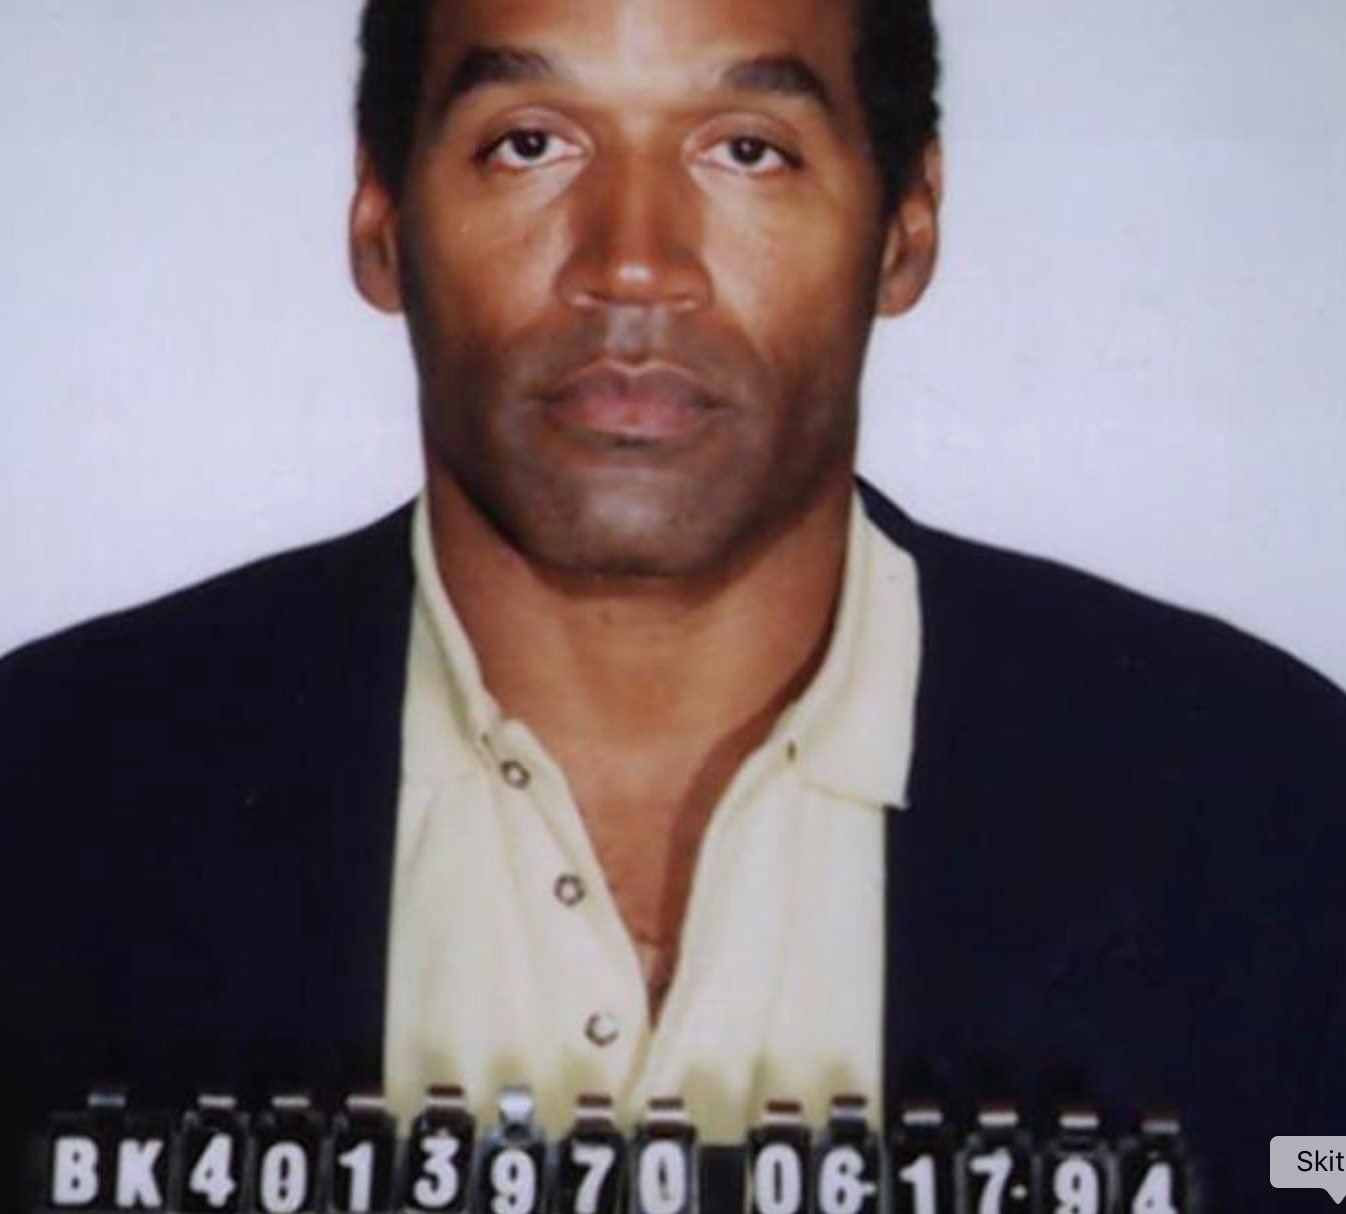 Mug_shot_of_O_J__Simpson_jpg_738×1_119_pixels